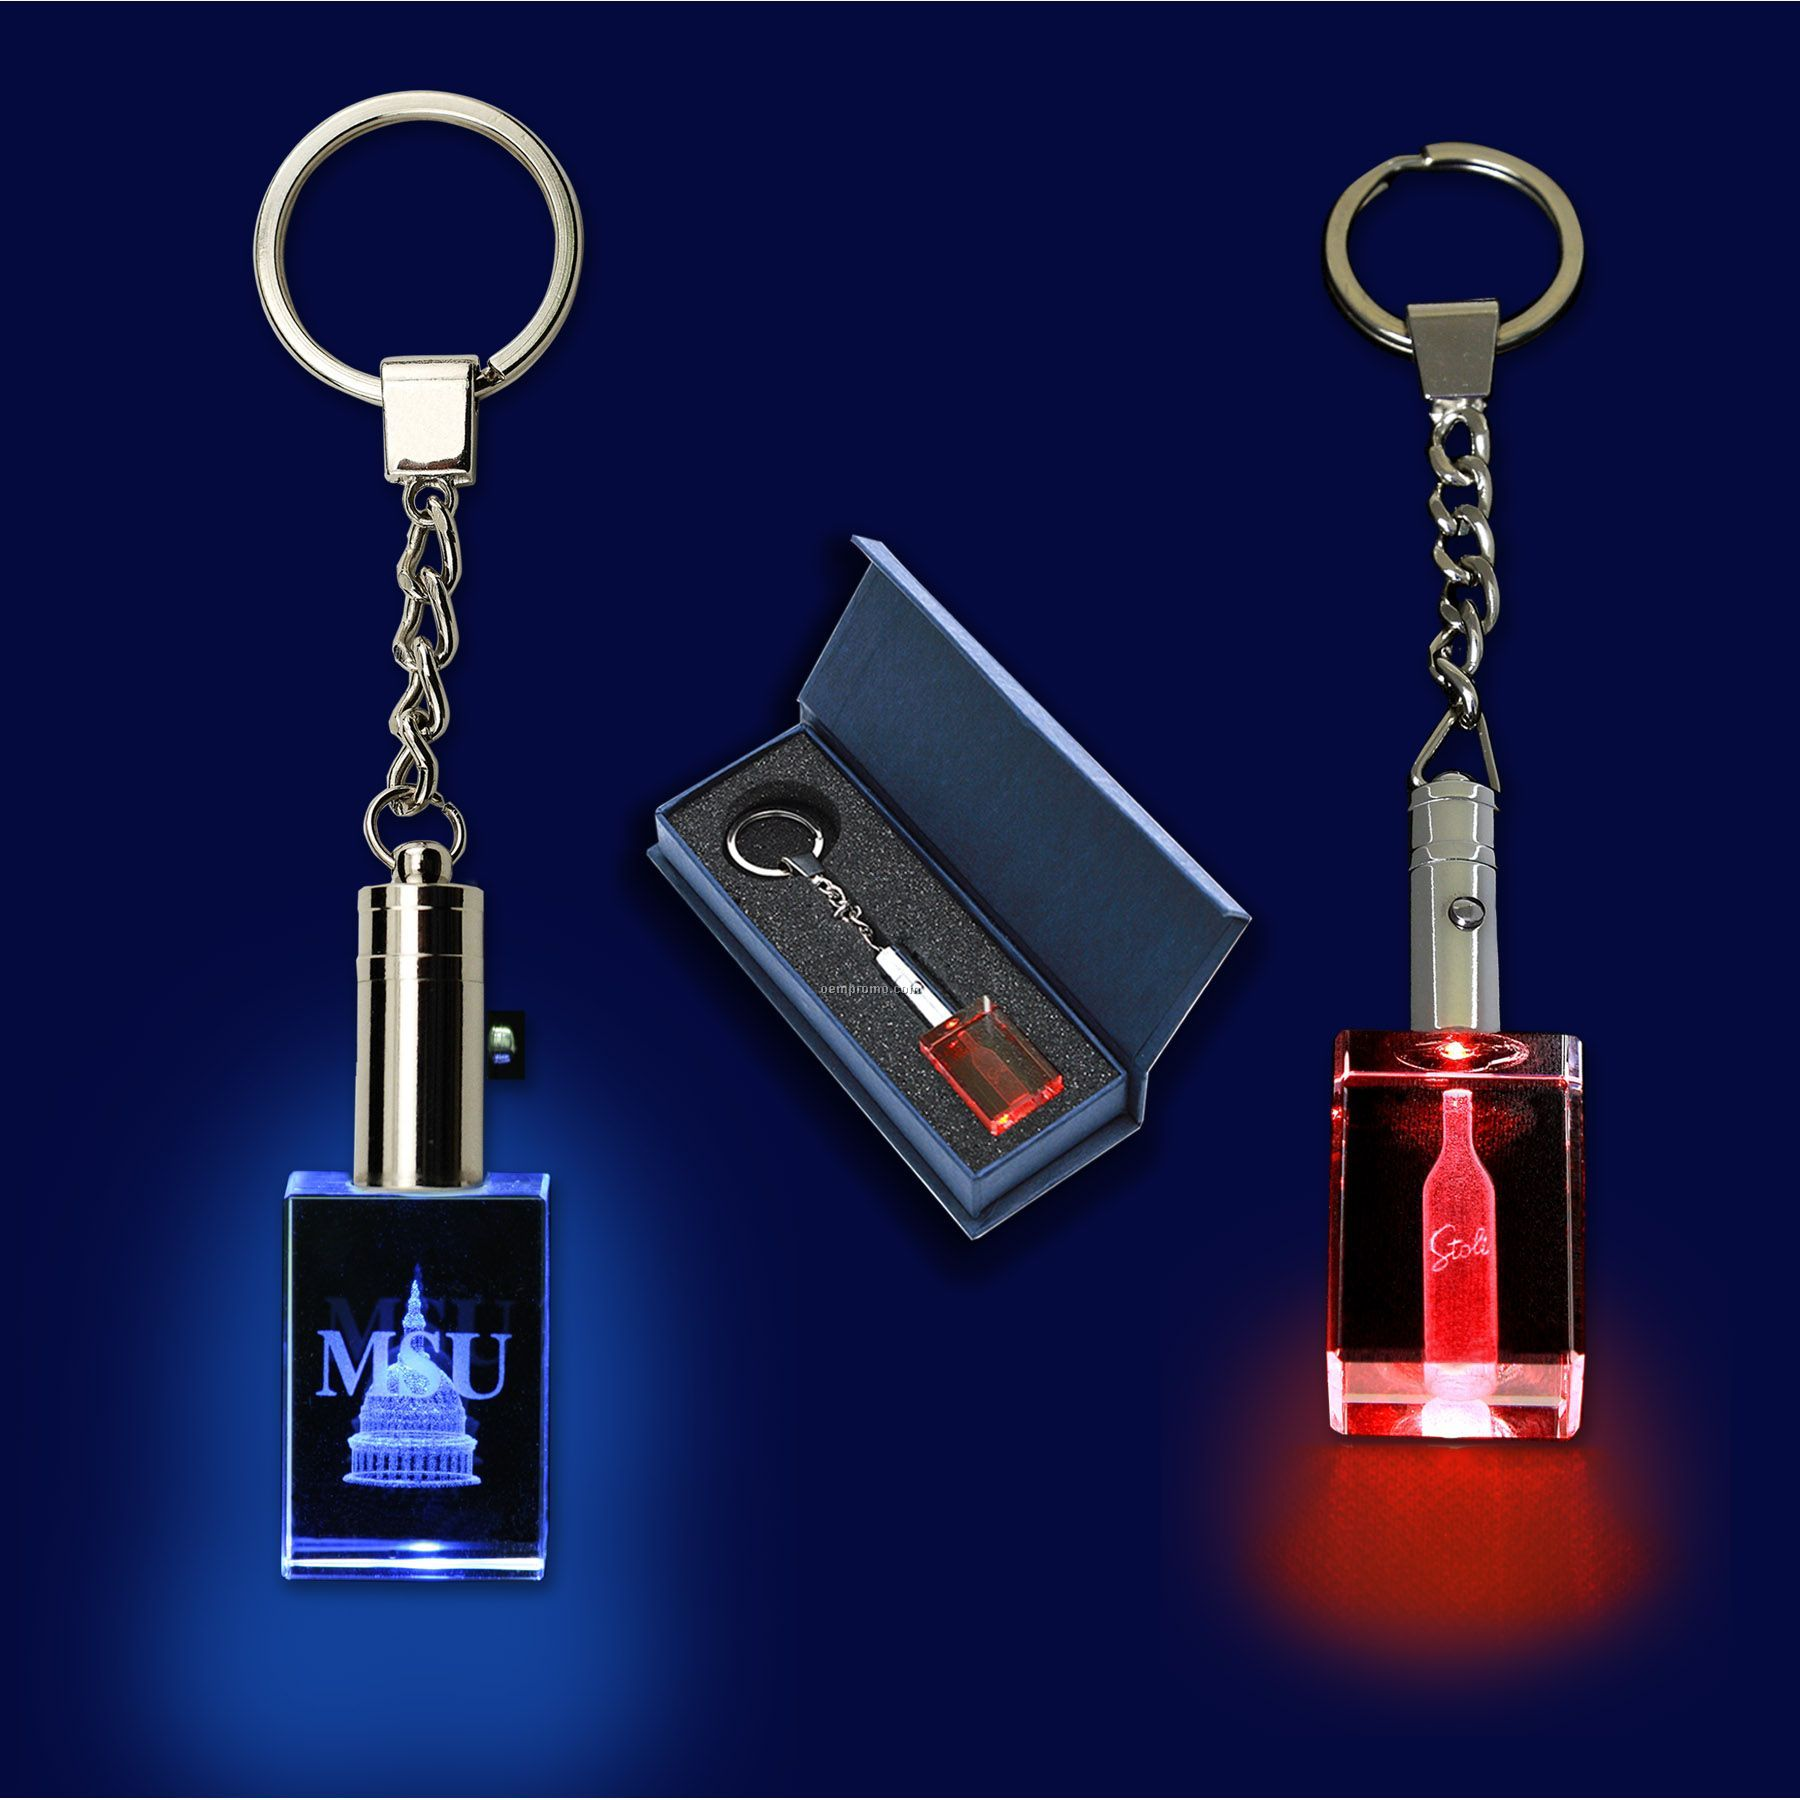 Crystal Keytag With Lasered Imprint And LED